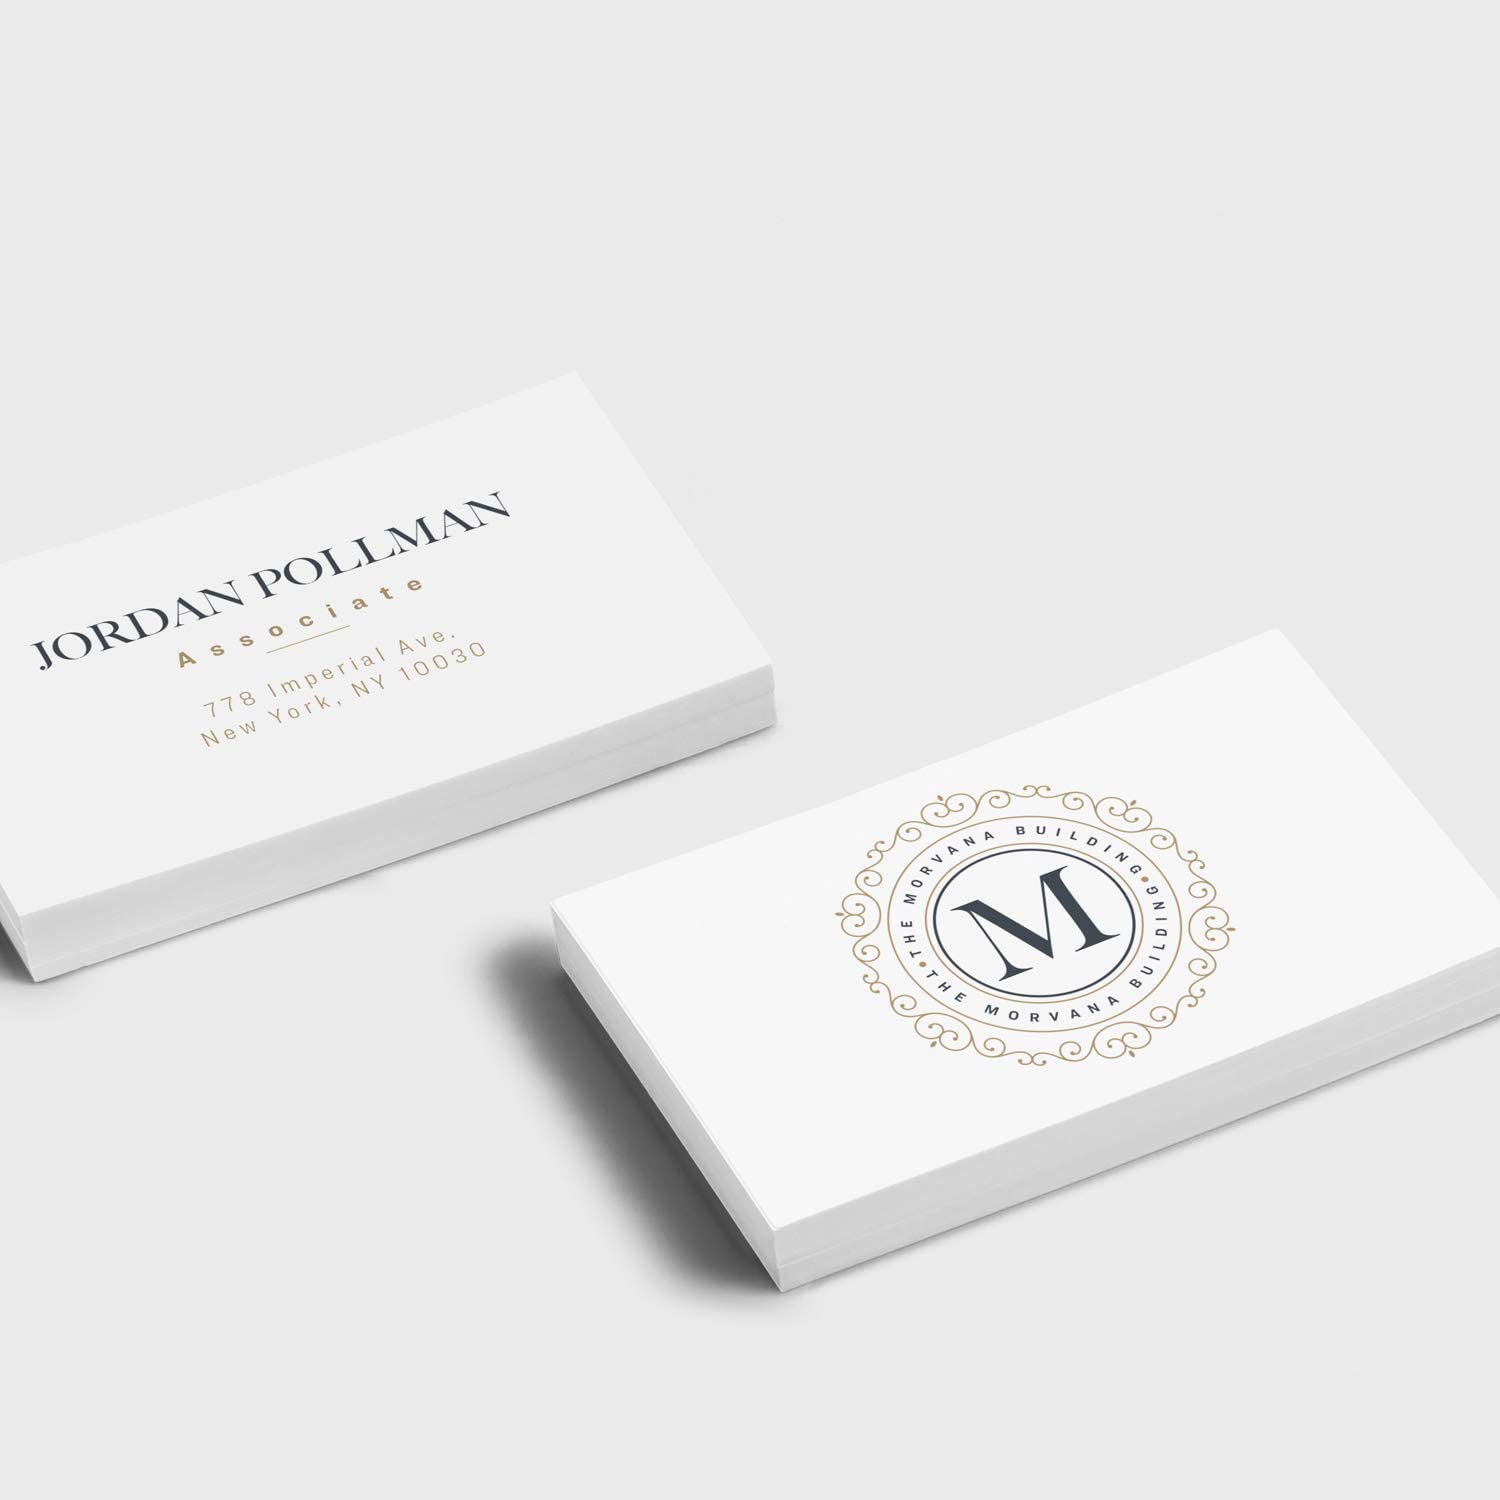 Avery Printable Business Cards, Inkjet Printers, 200 Cards, 2 x 3.5, Clean Edge, Heavyweight (8871), White : Business Card Stock : Office Products